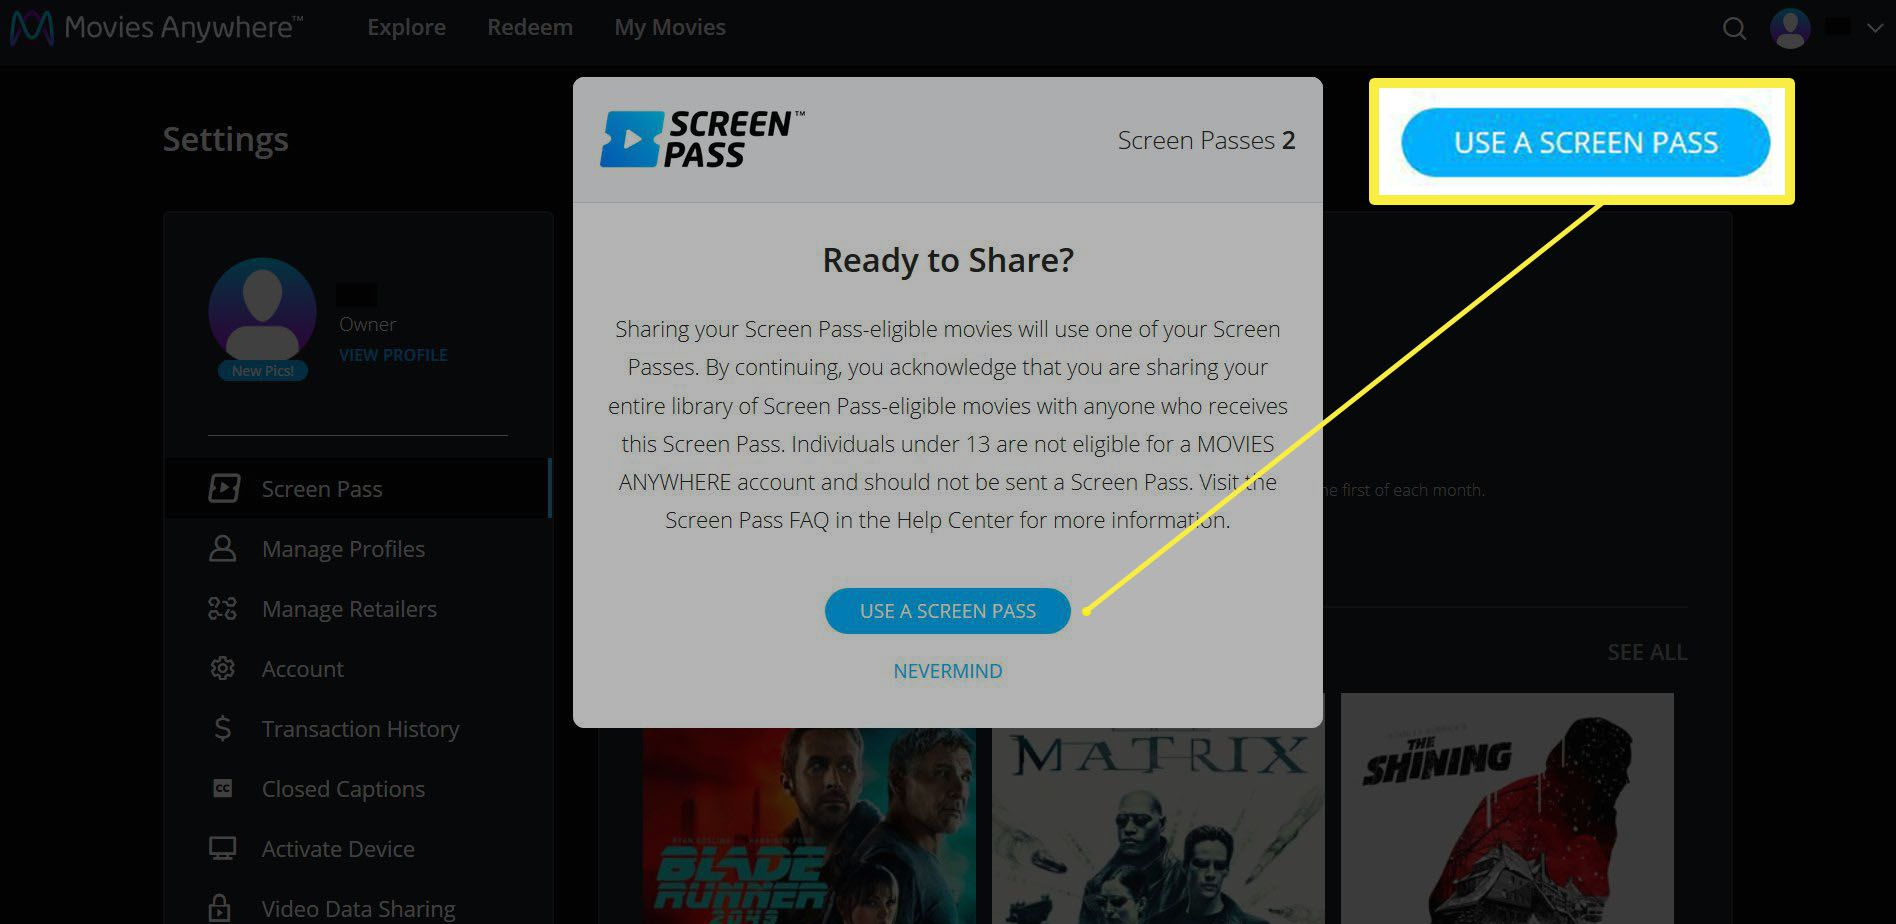 Window with the option to use a screen pass for the list of your movies on the Movies Anywhere site.